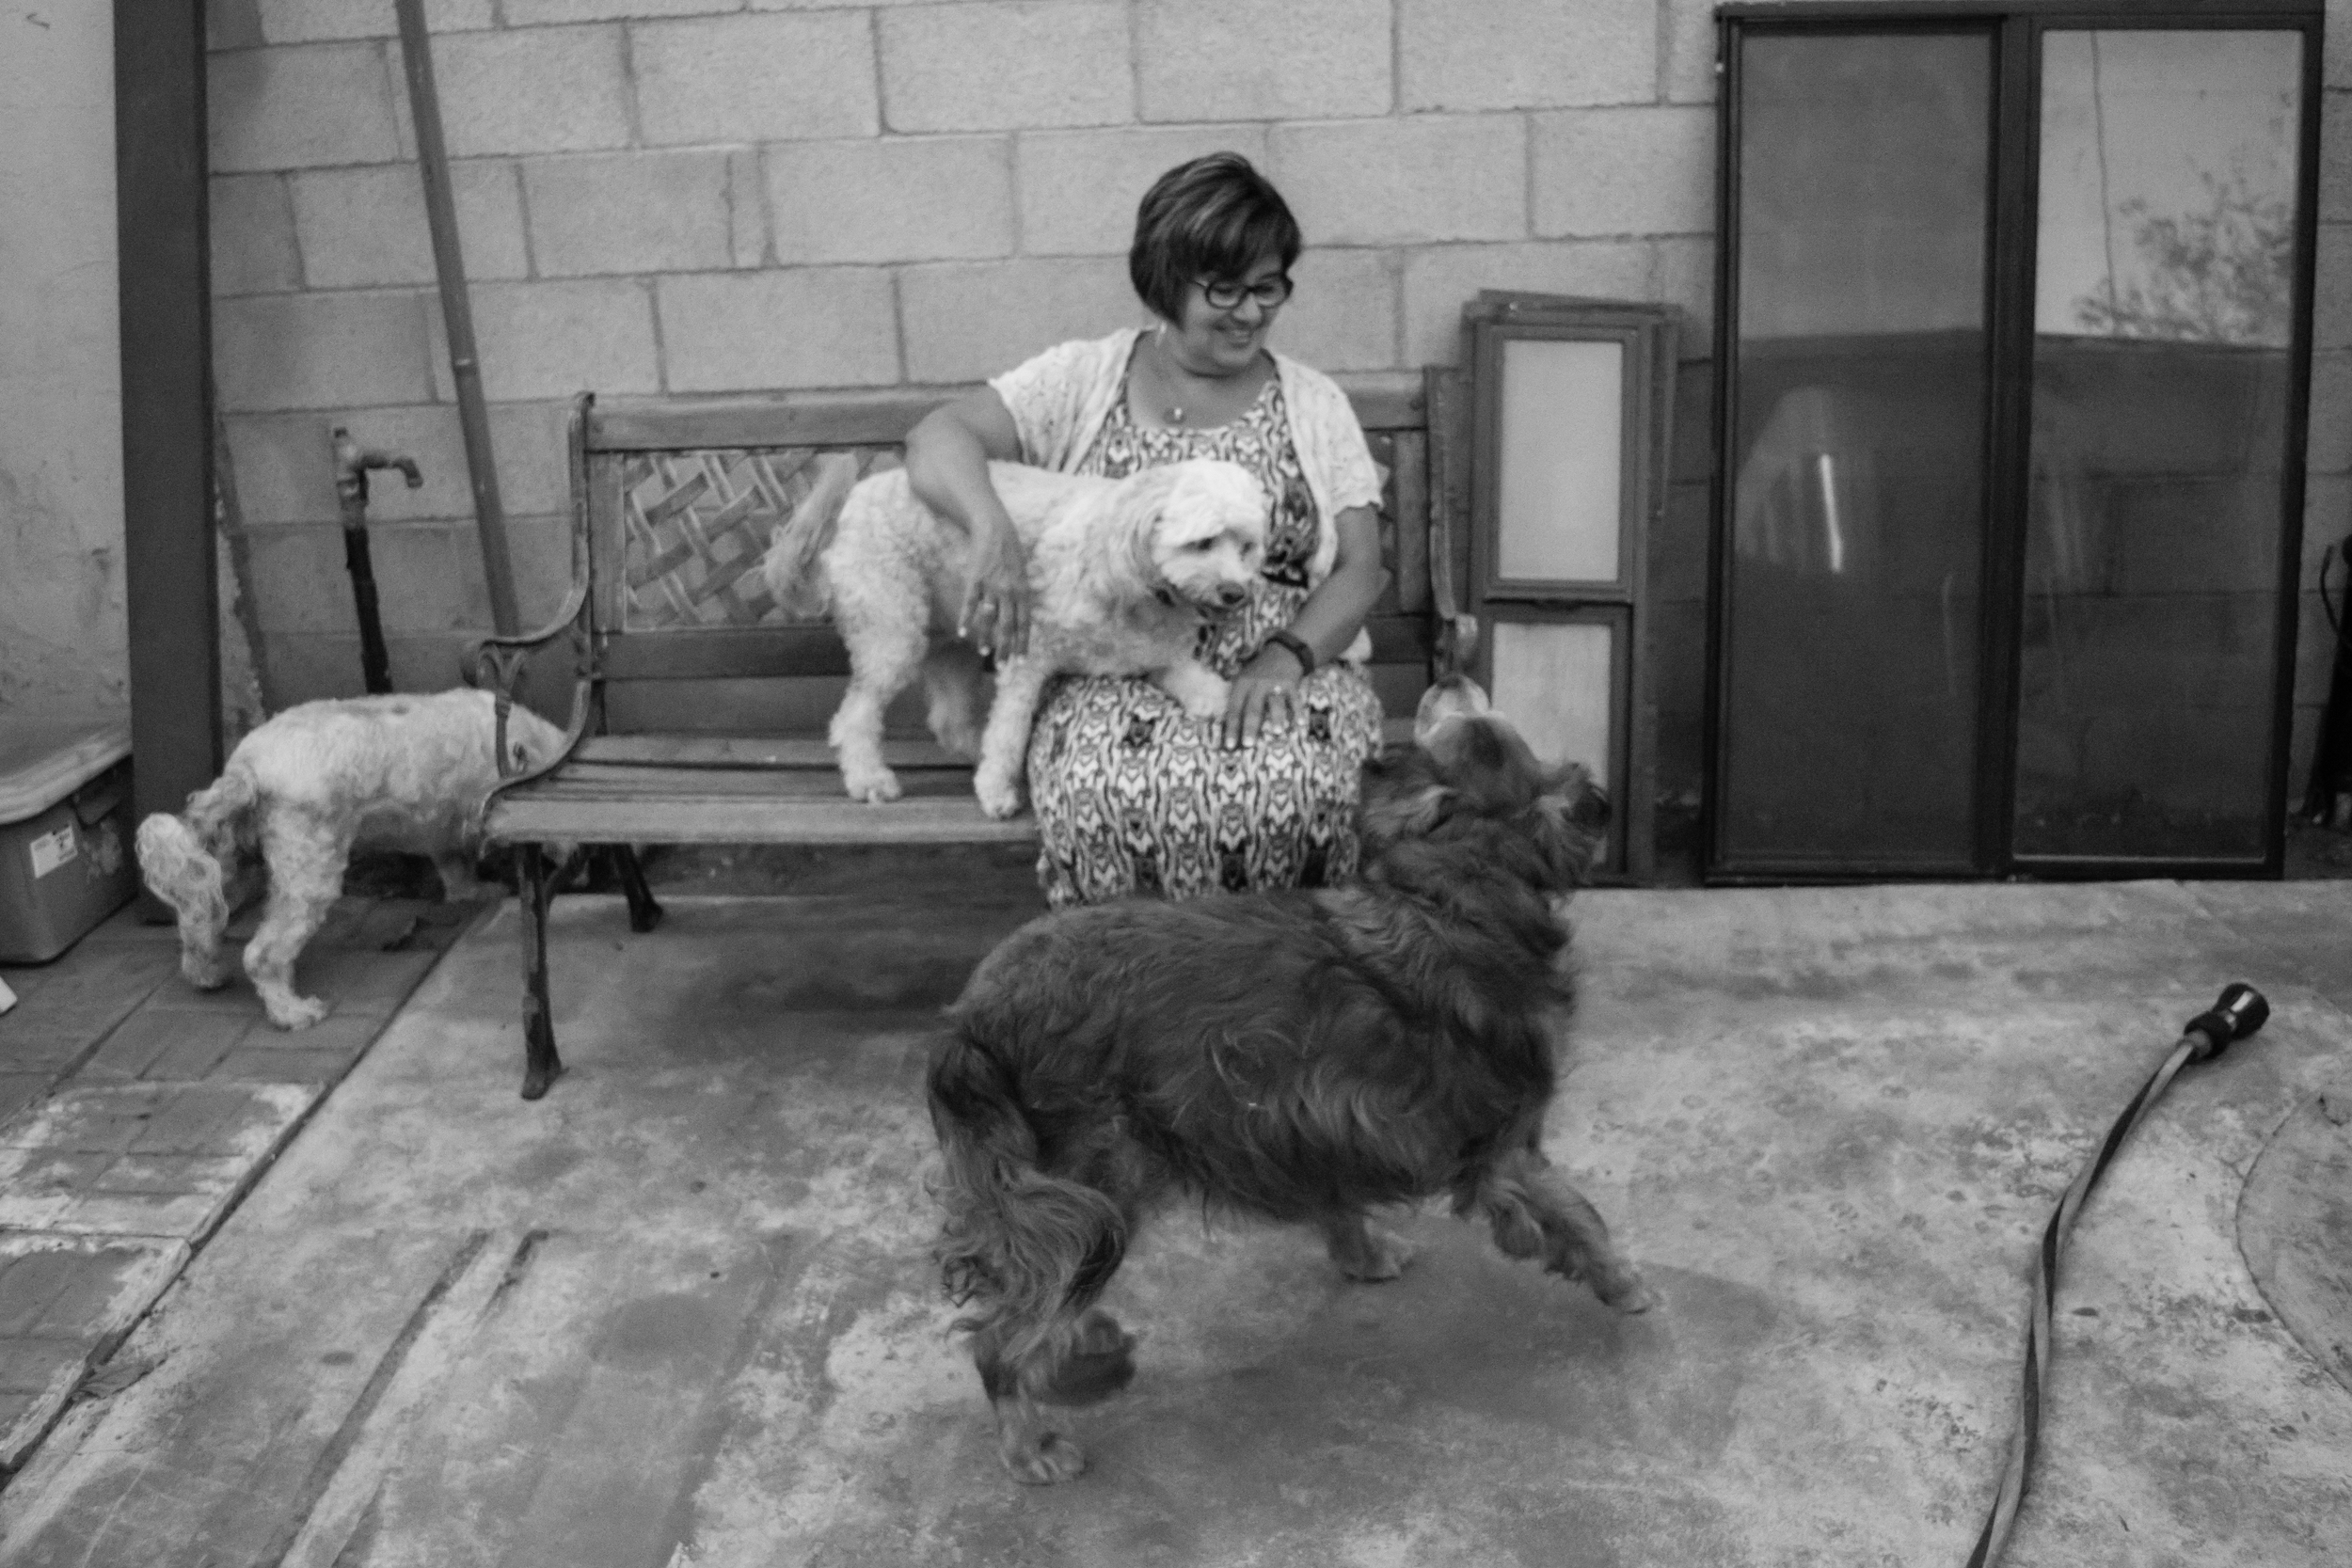 Joyce at her home with her 3 dogs, Minnie, Lucy and Lily.